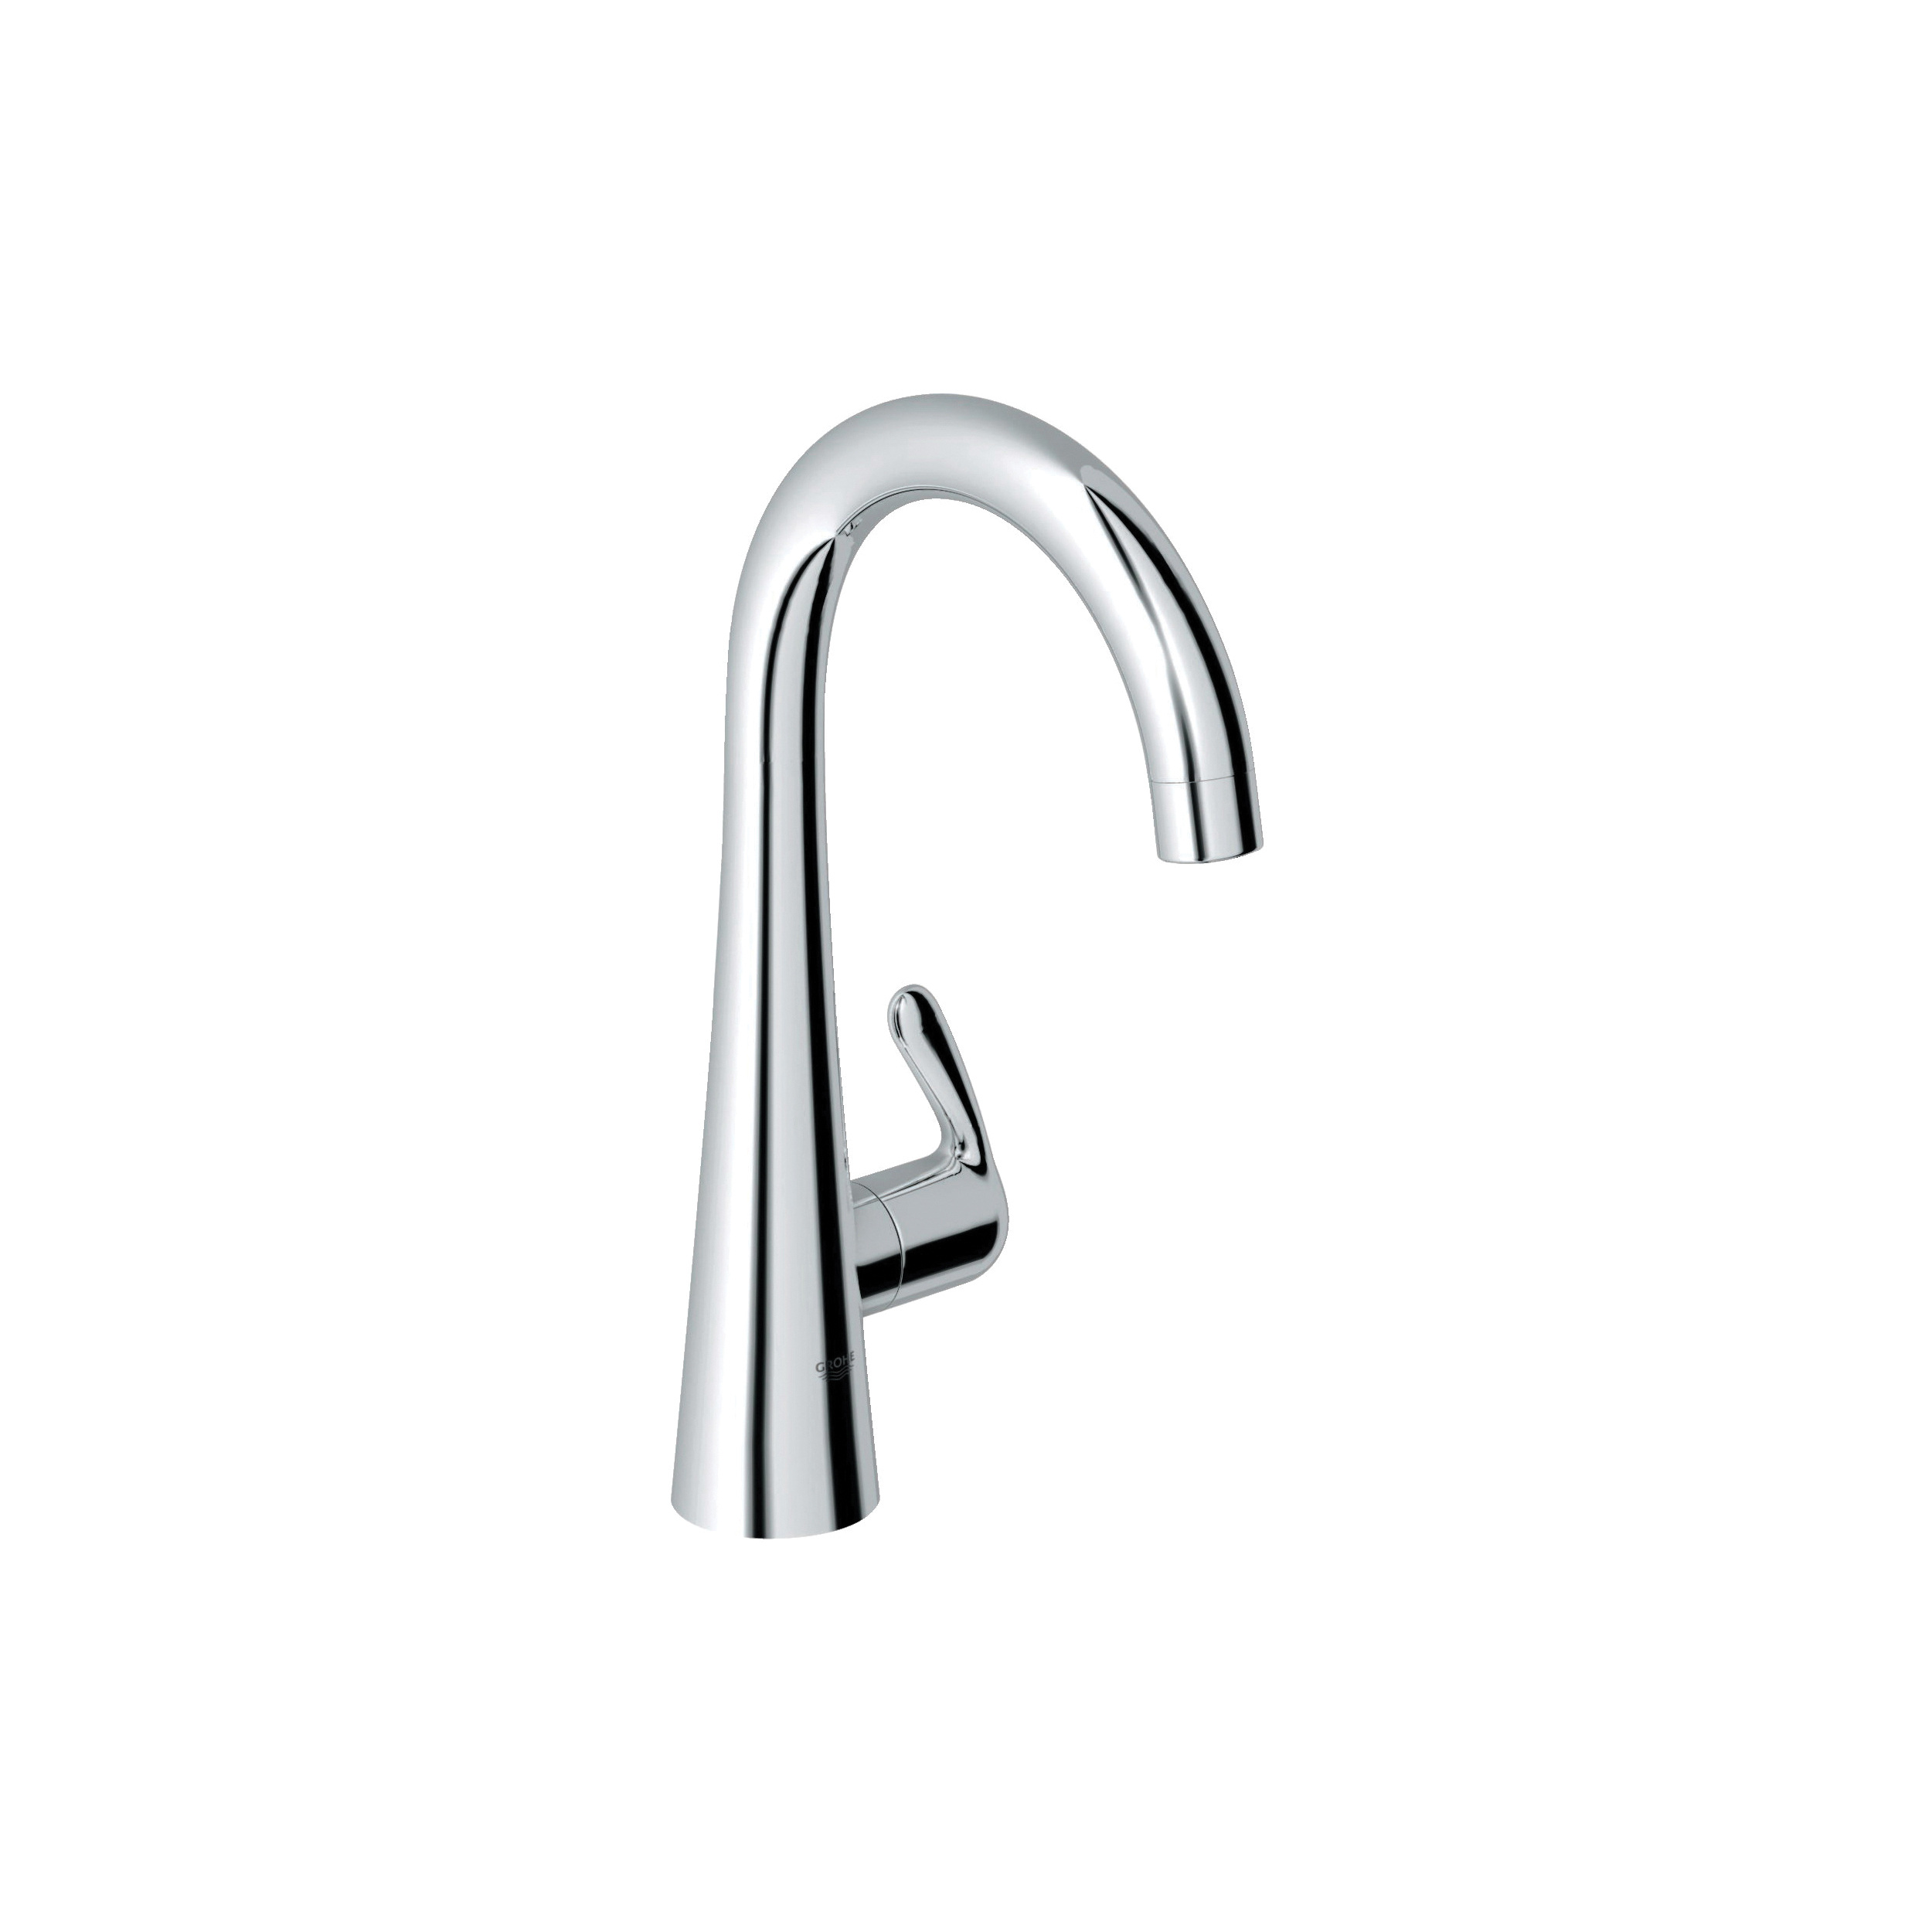 GROHE 30026000 Zedra Ladylux™ Pillar Tap Water Faucet, 1.75 gpm, 1 Handle, StarLight® Chrome, Import, Residential